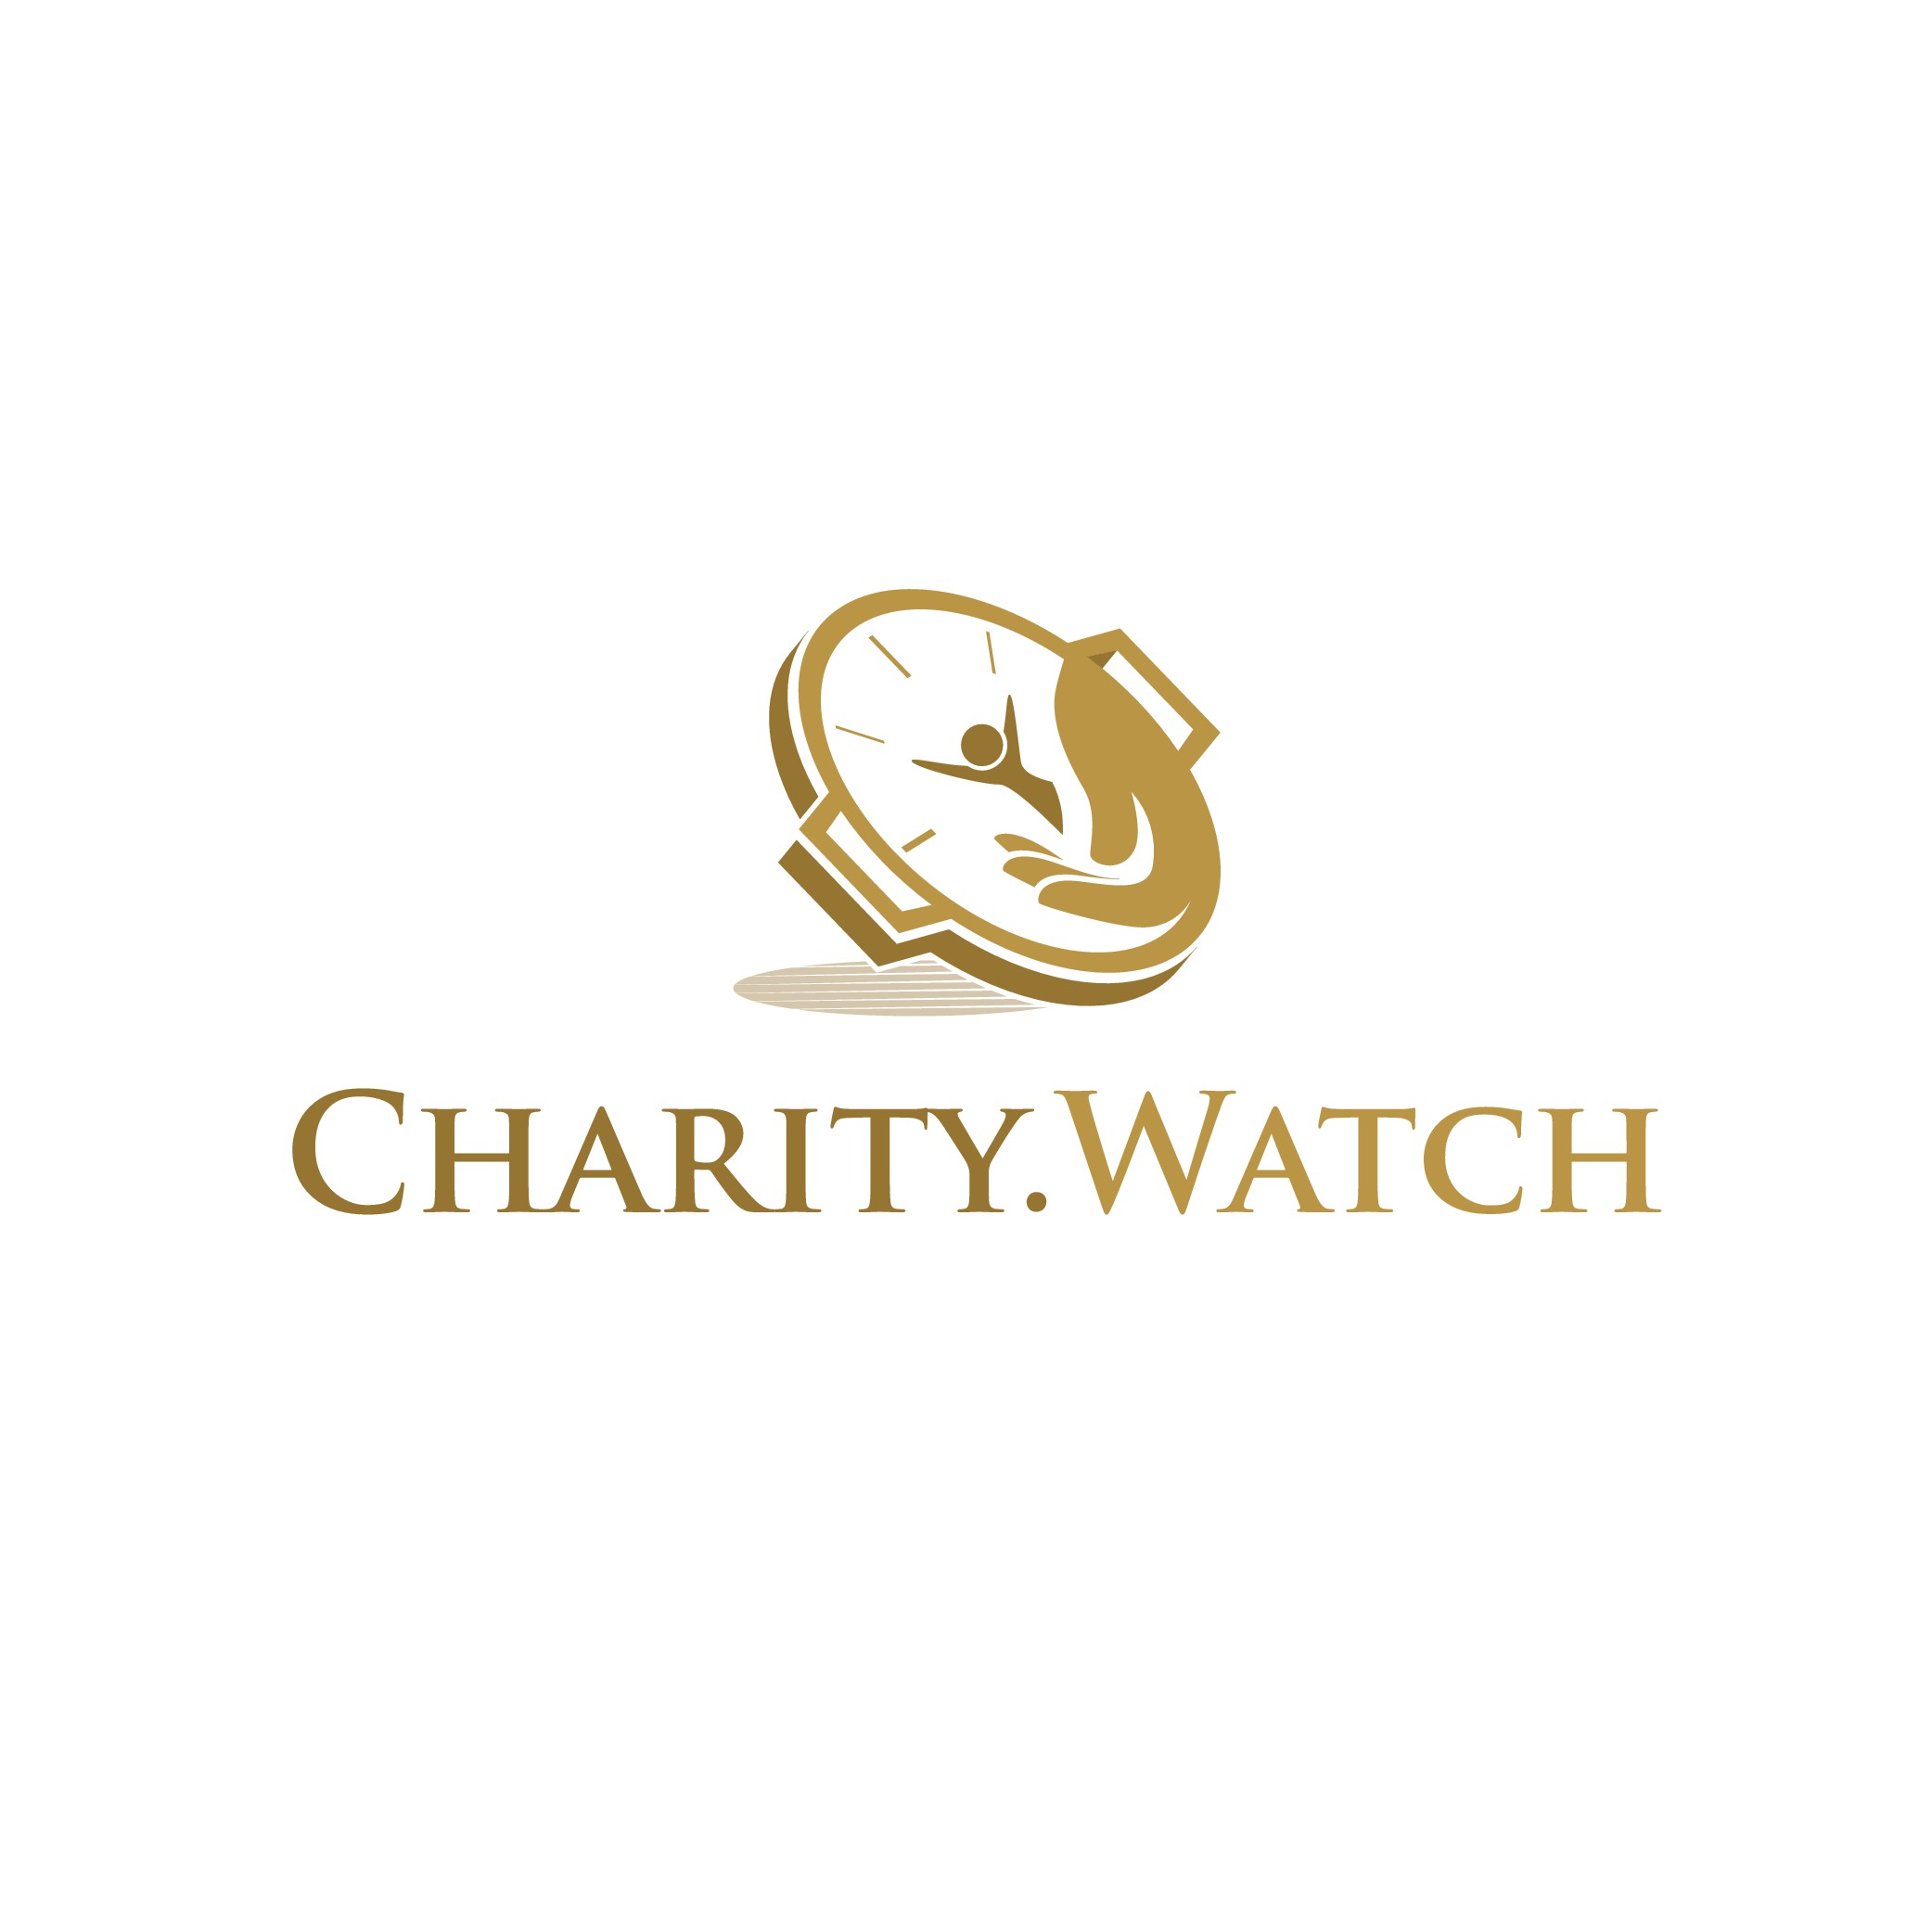 Cool charity logo design that catches attention?